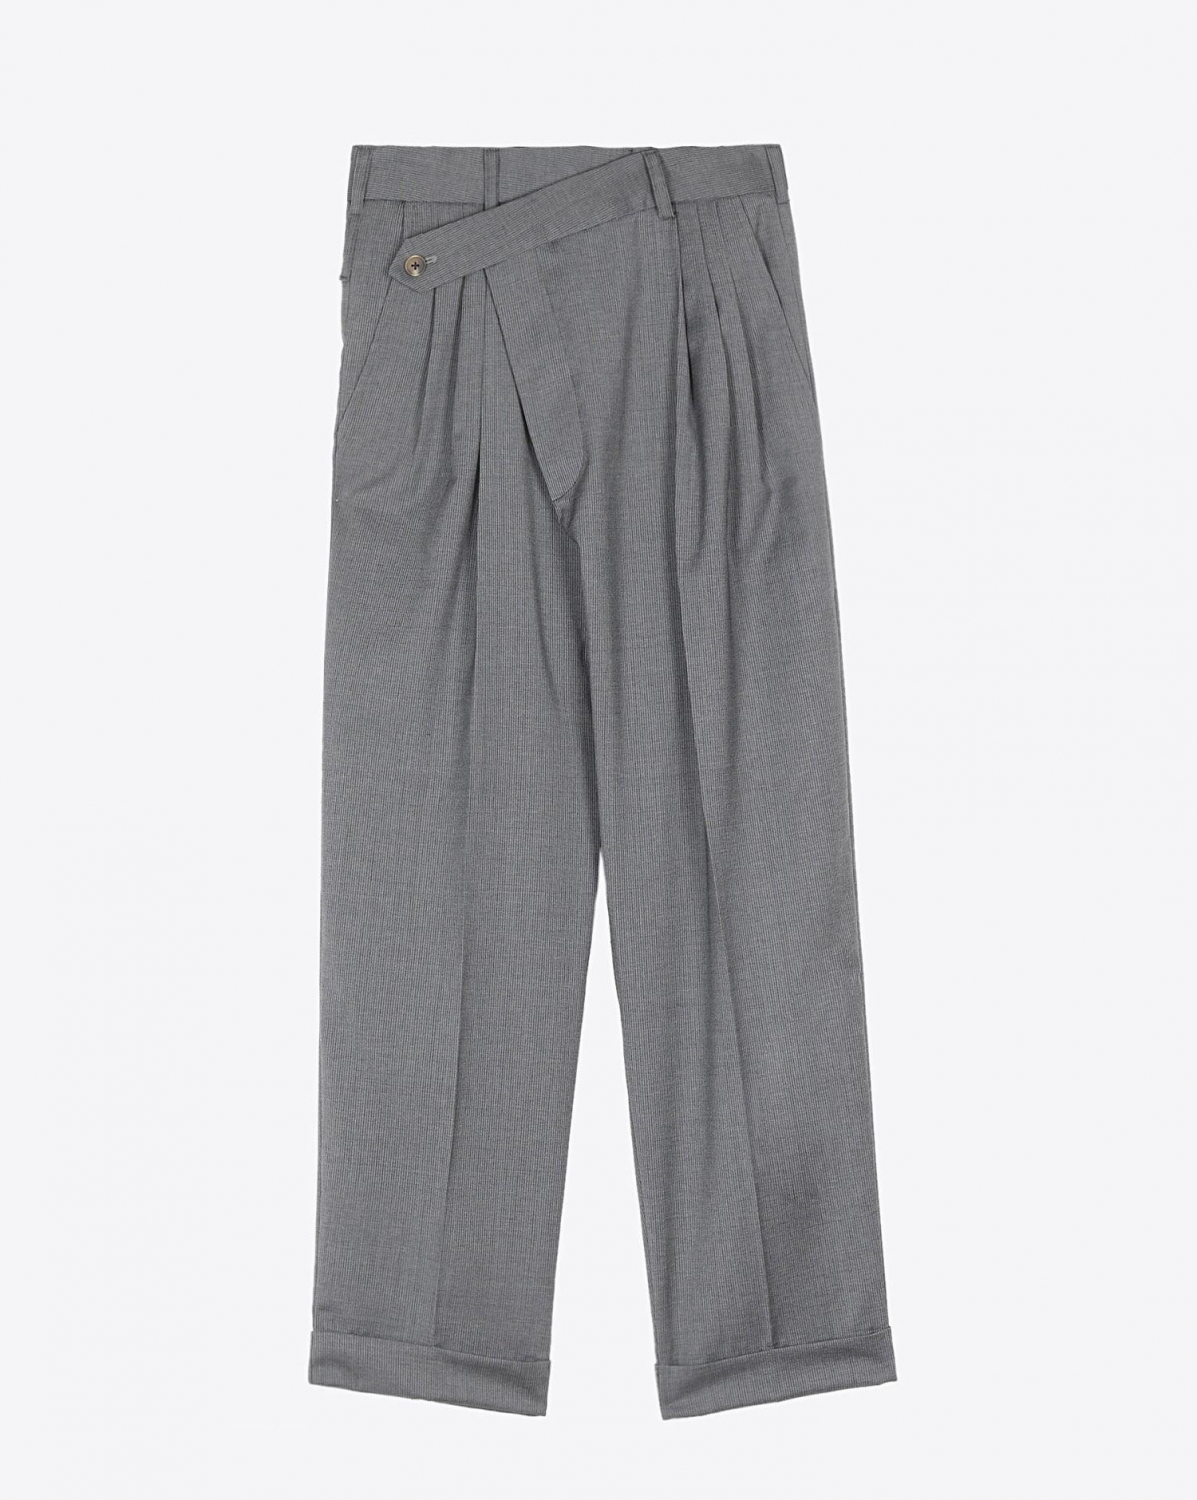 R13 Denim Collection Cropped Triple-Pleat Crossover - Lt Grey Pinstripe